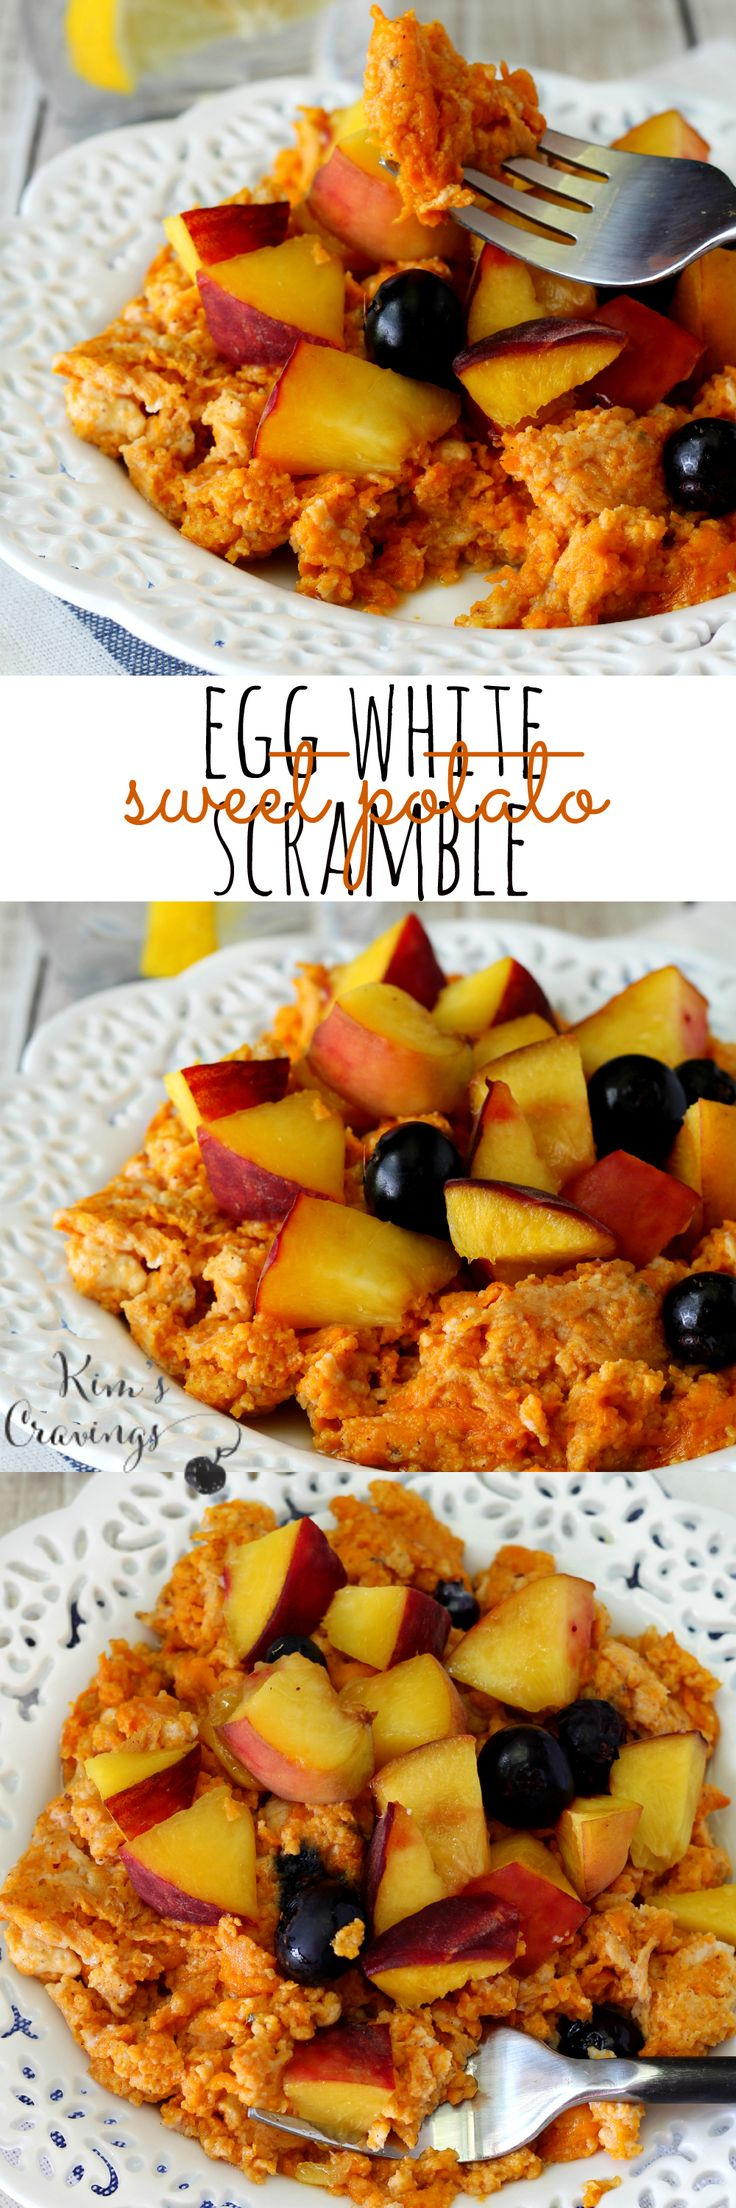 Egg White Sweet Potato Scramble- a lightly sweet and delicious way to start the day! (21 Day Fix EXTREME approved)